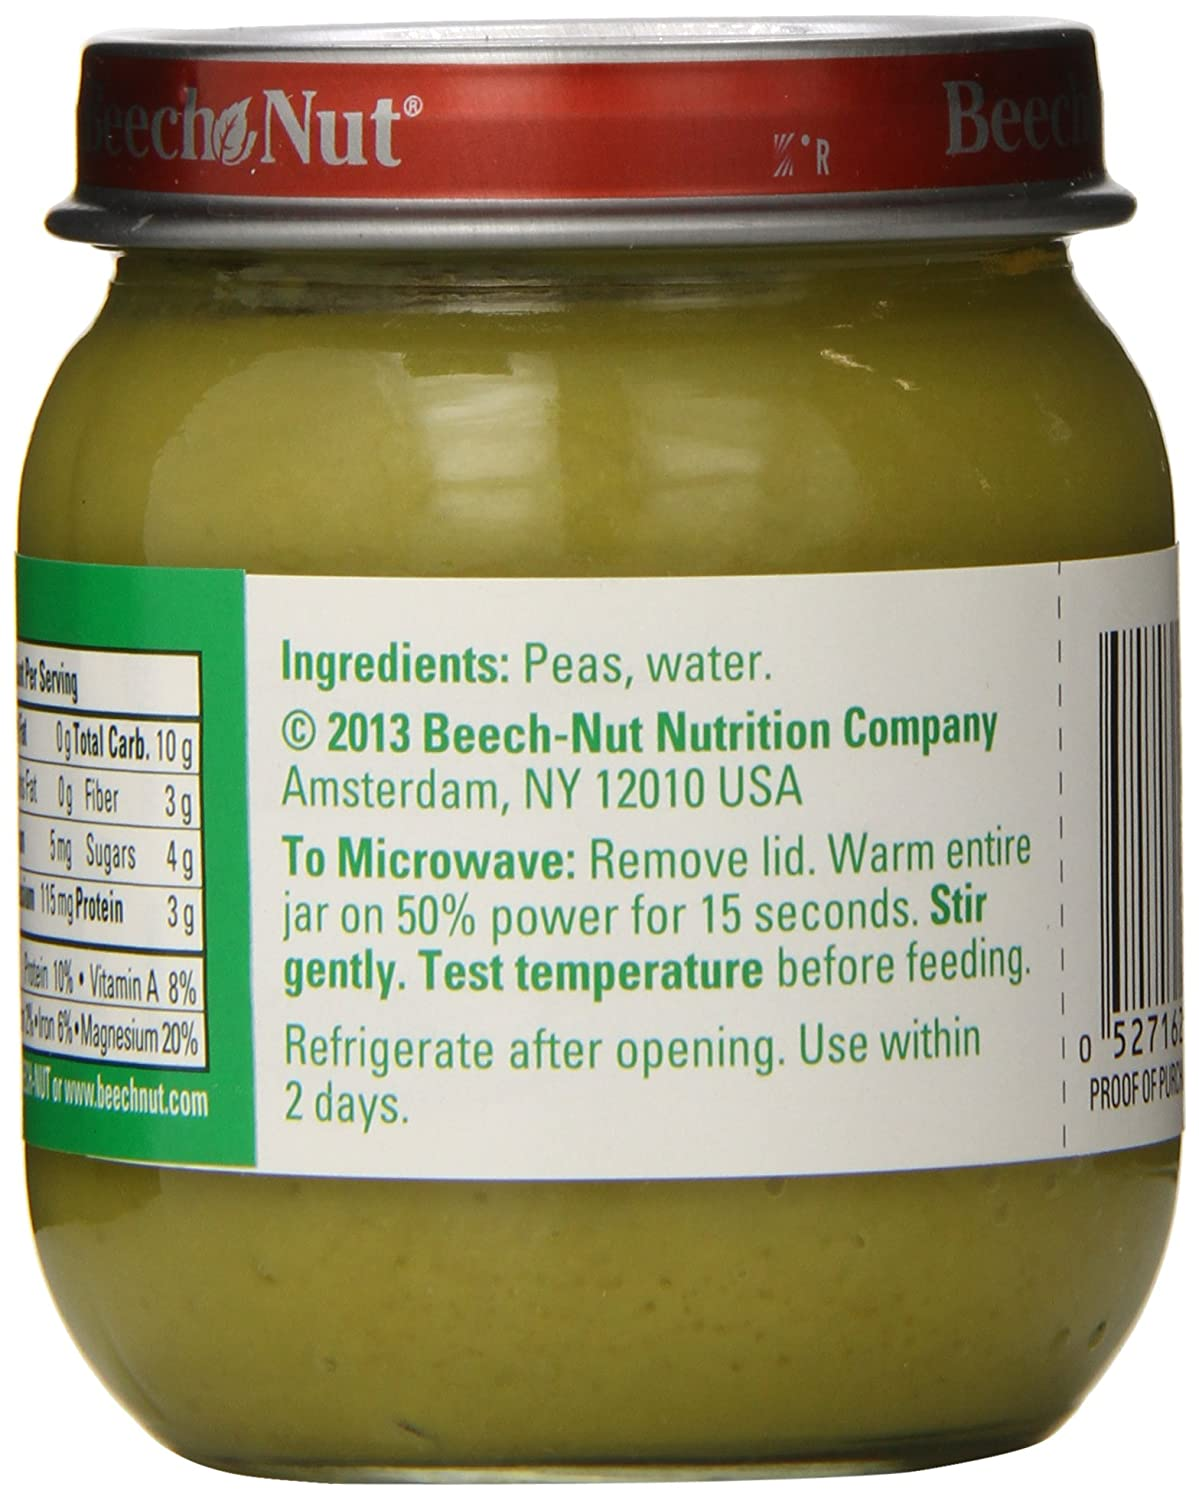 Beech-Nut Classics, Sweet Peas, 4 Ounce (Pack of 10): Amazon.com: Grocery & Gourmet Food